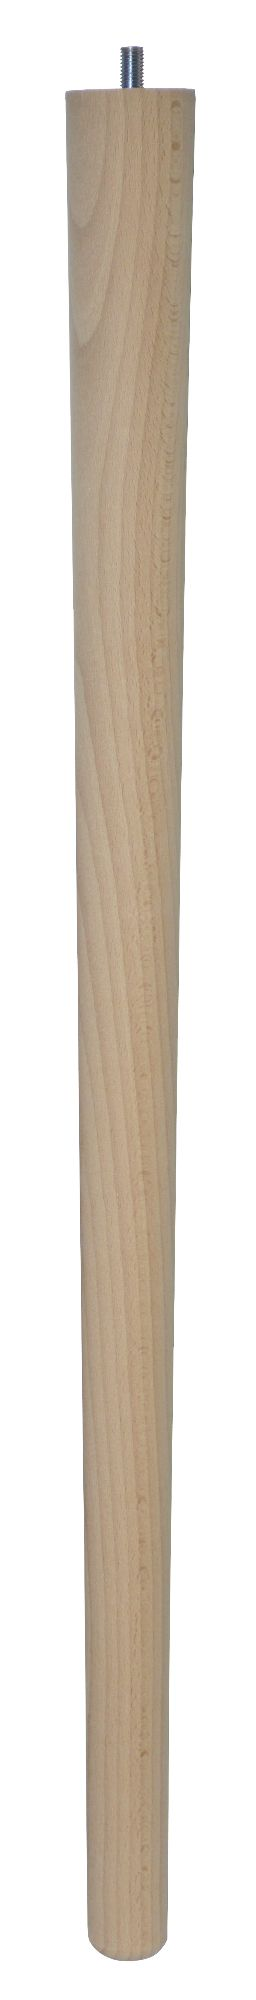 690mm Beech Tapered Leg